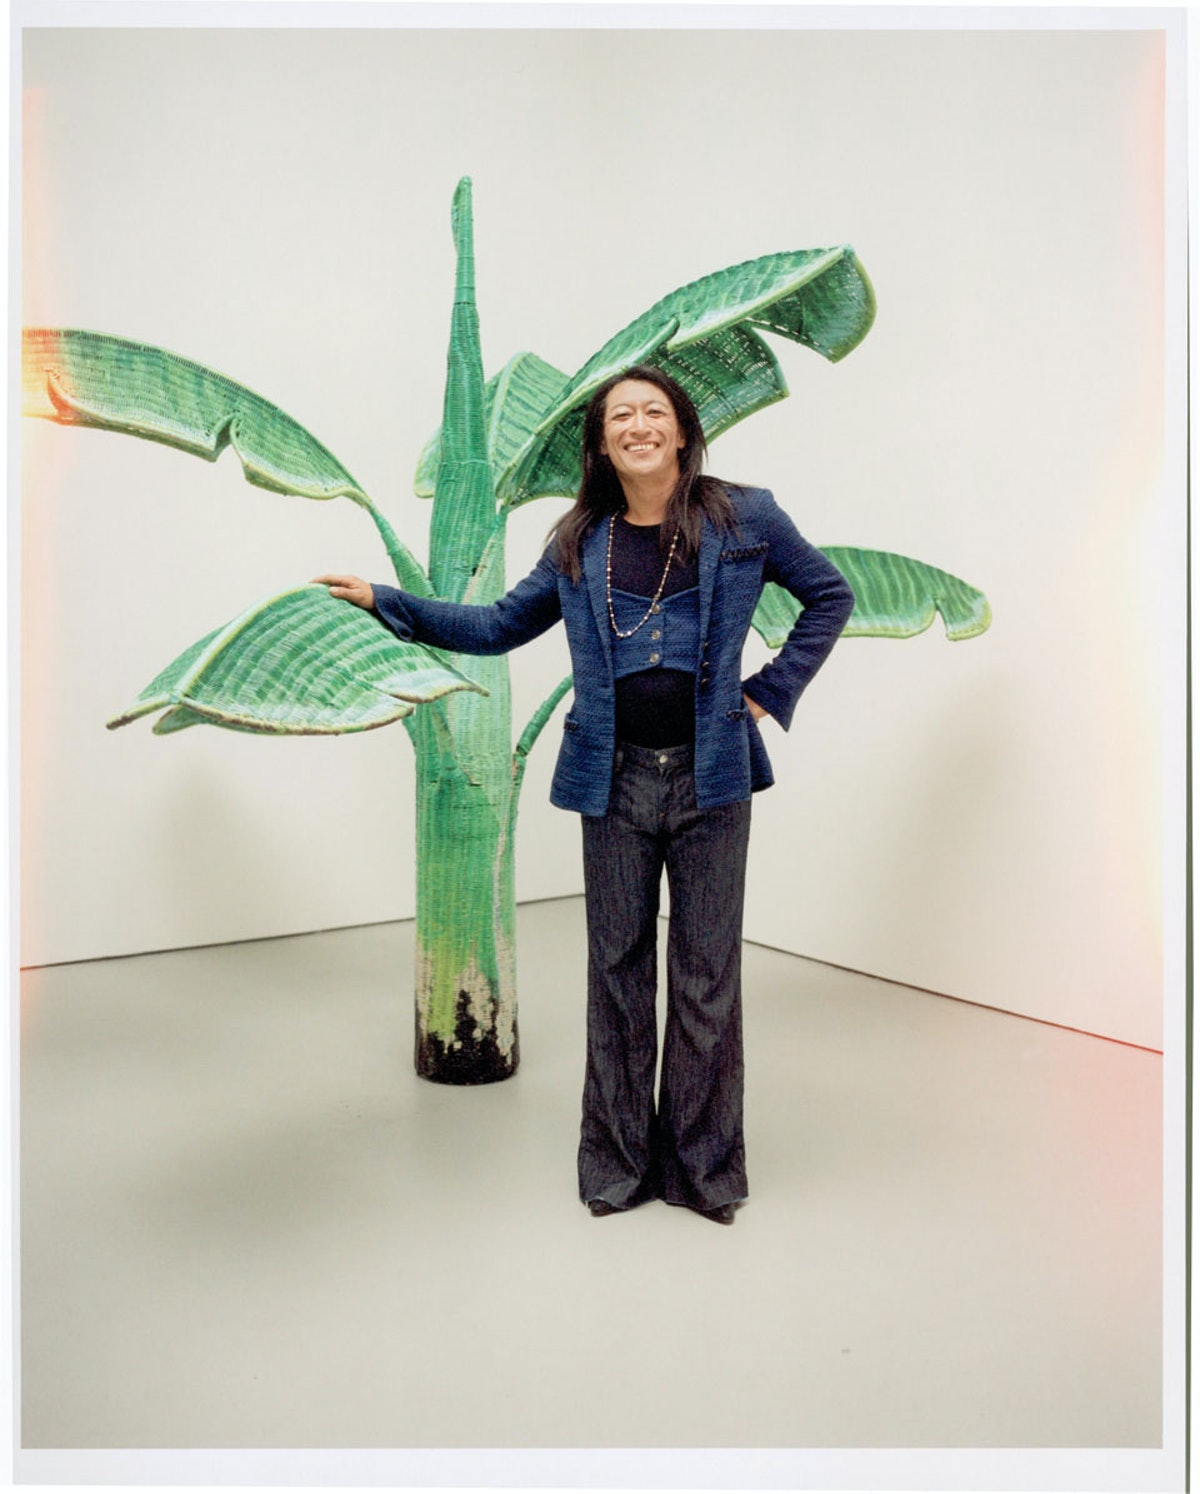 Yutaka Sone in a 2007 Chanel jacket, photographed with his piece Tropical Composition/Banana Tree No...